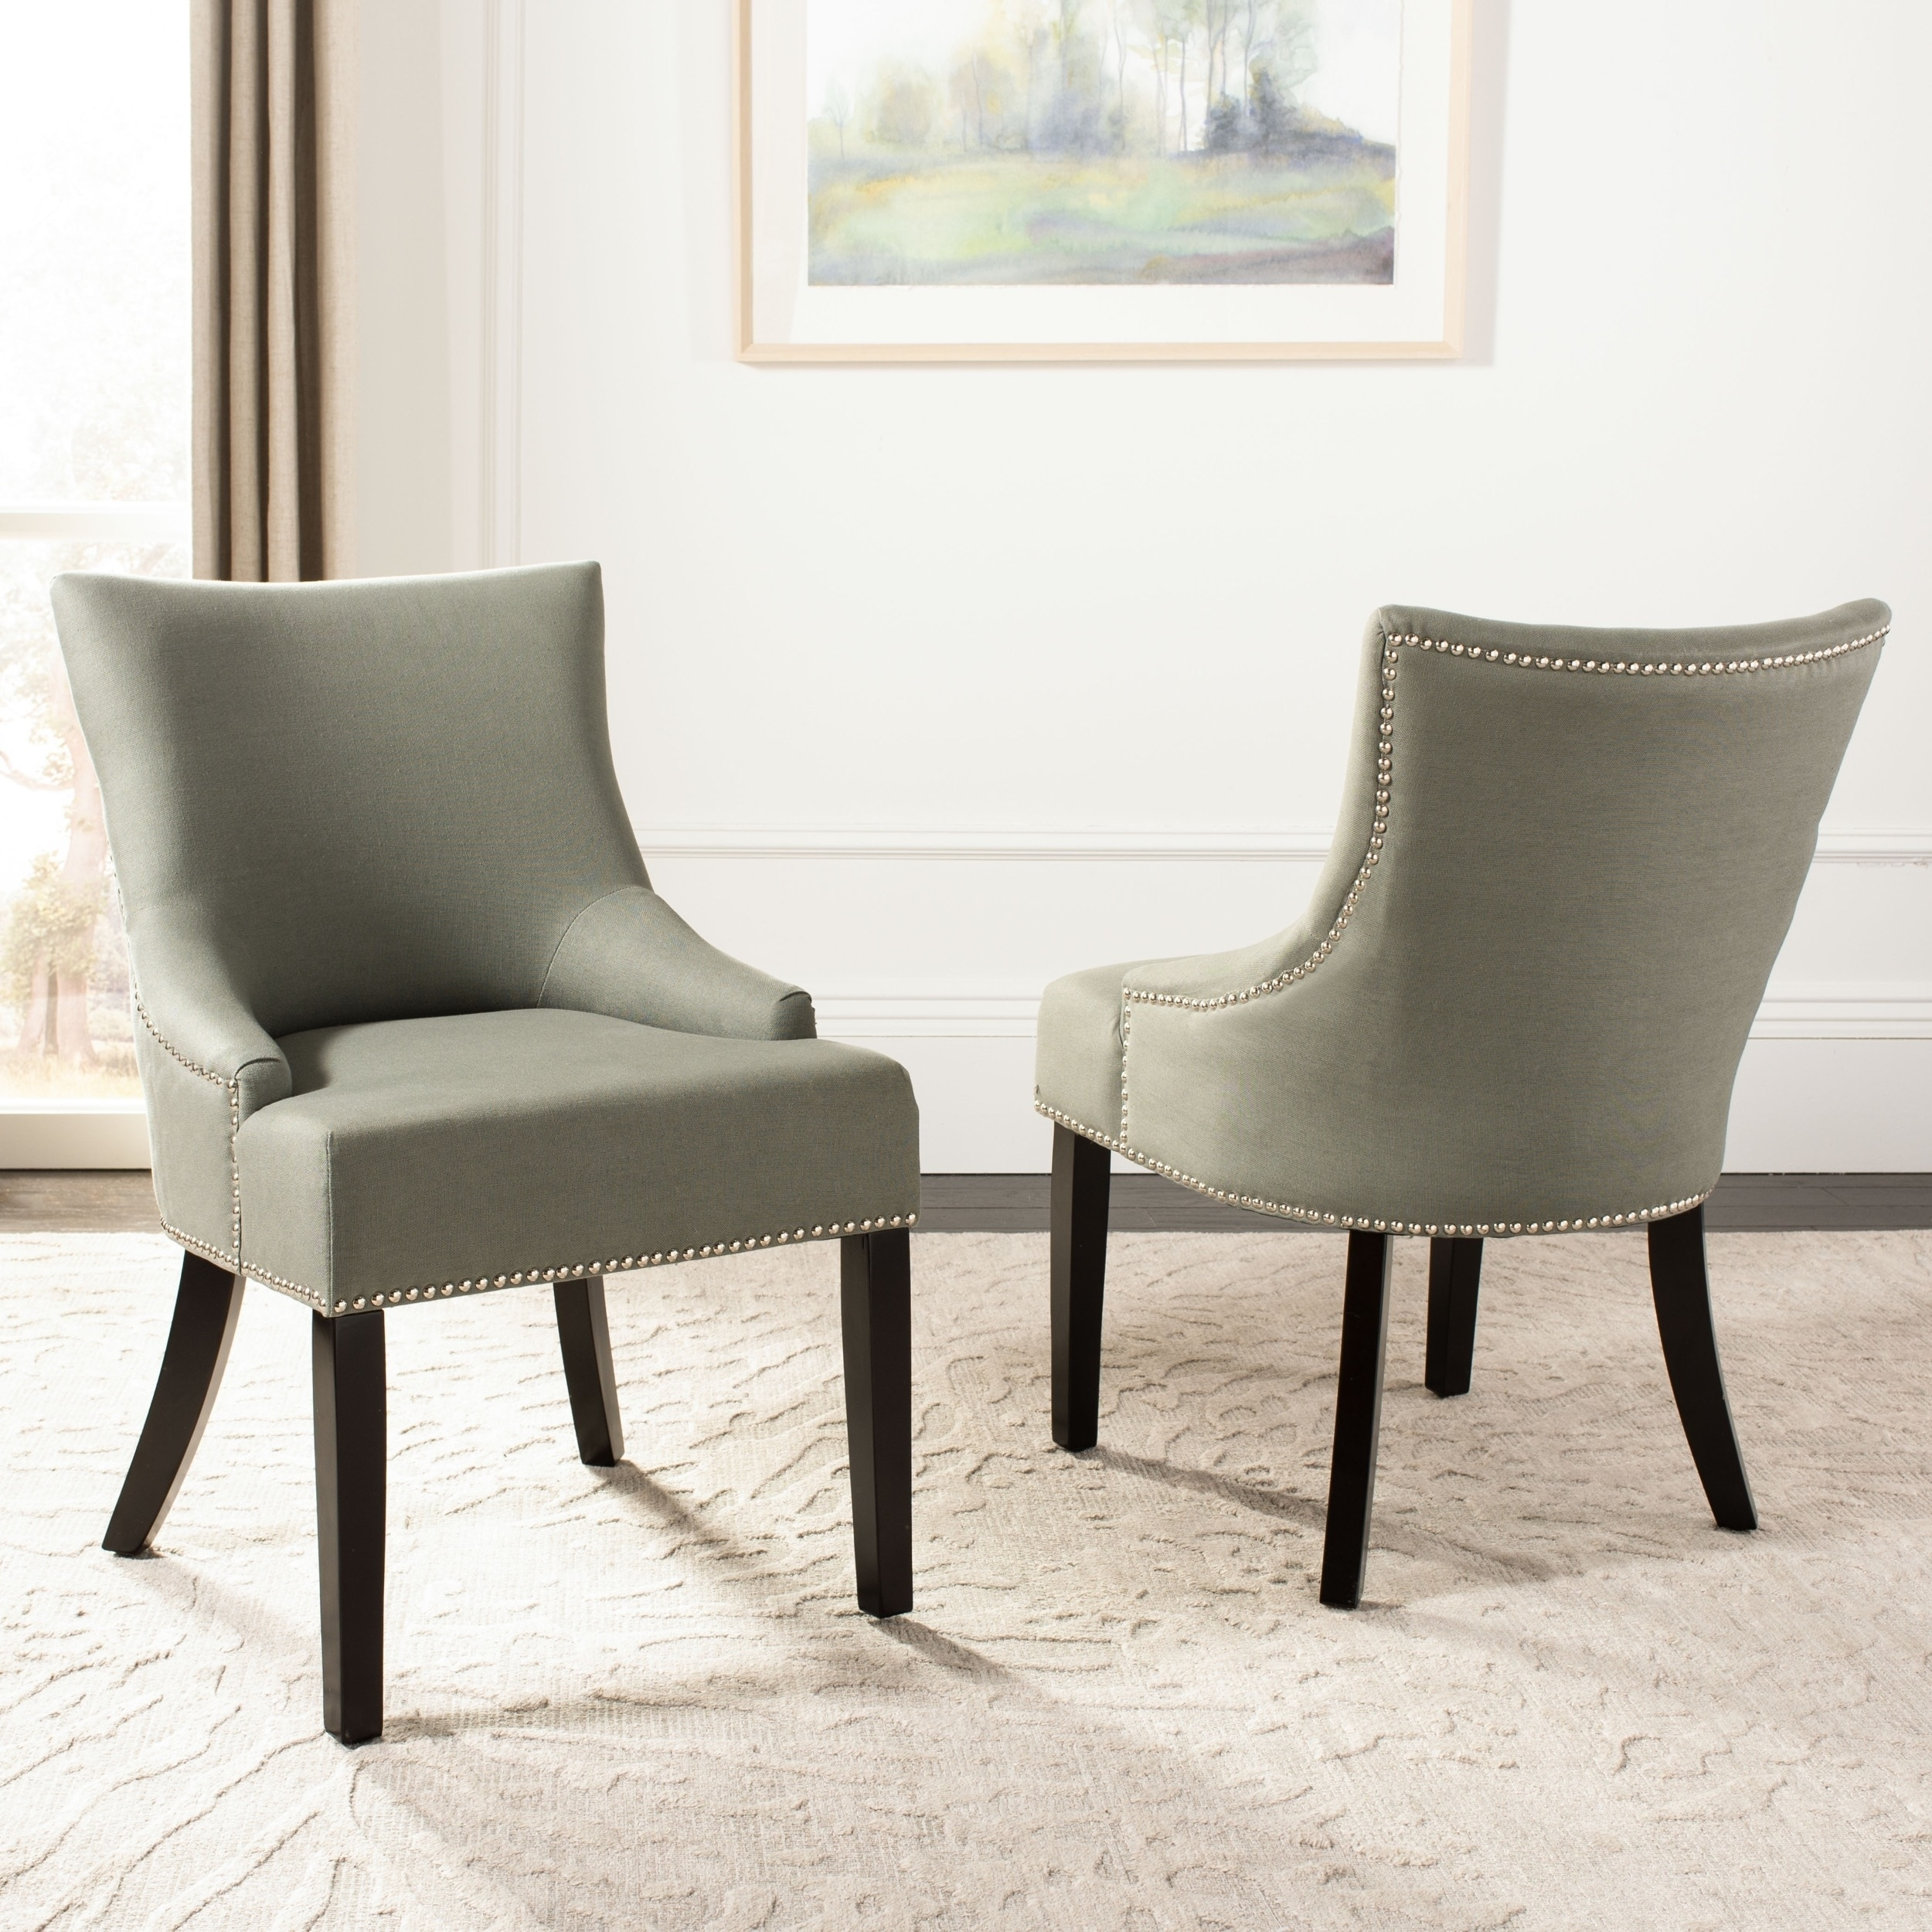 Strange Safavieh En Vogue Dining Loire Grey Linen Nailhead Dining Chairs Set Of 2 Bralicious Painted Fabric Chair Ideas Braliciousco